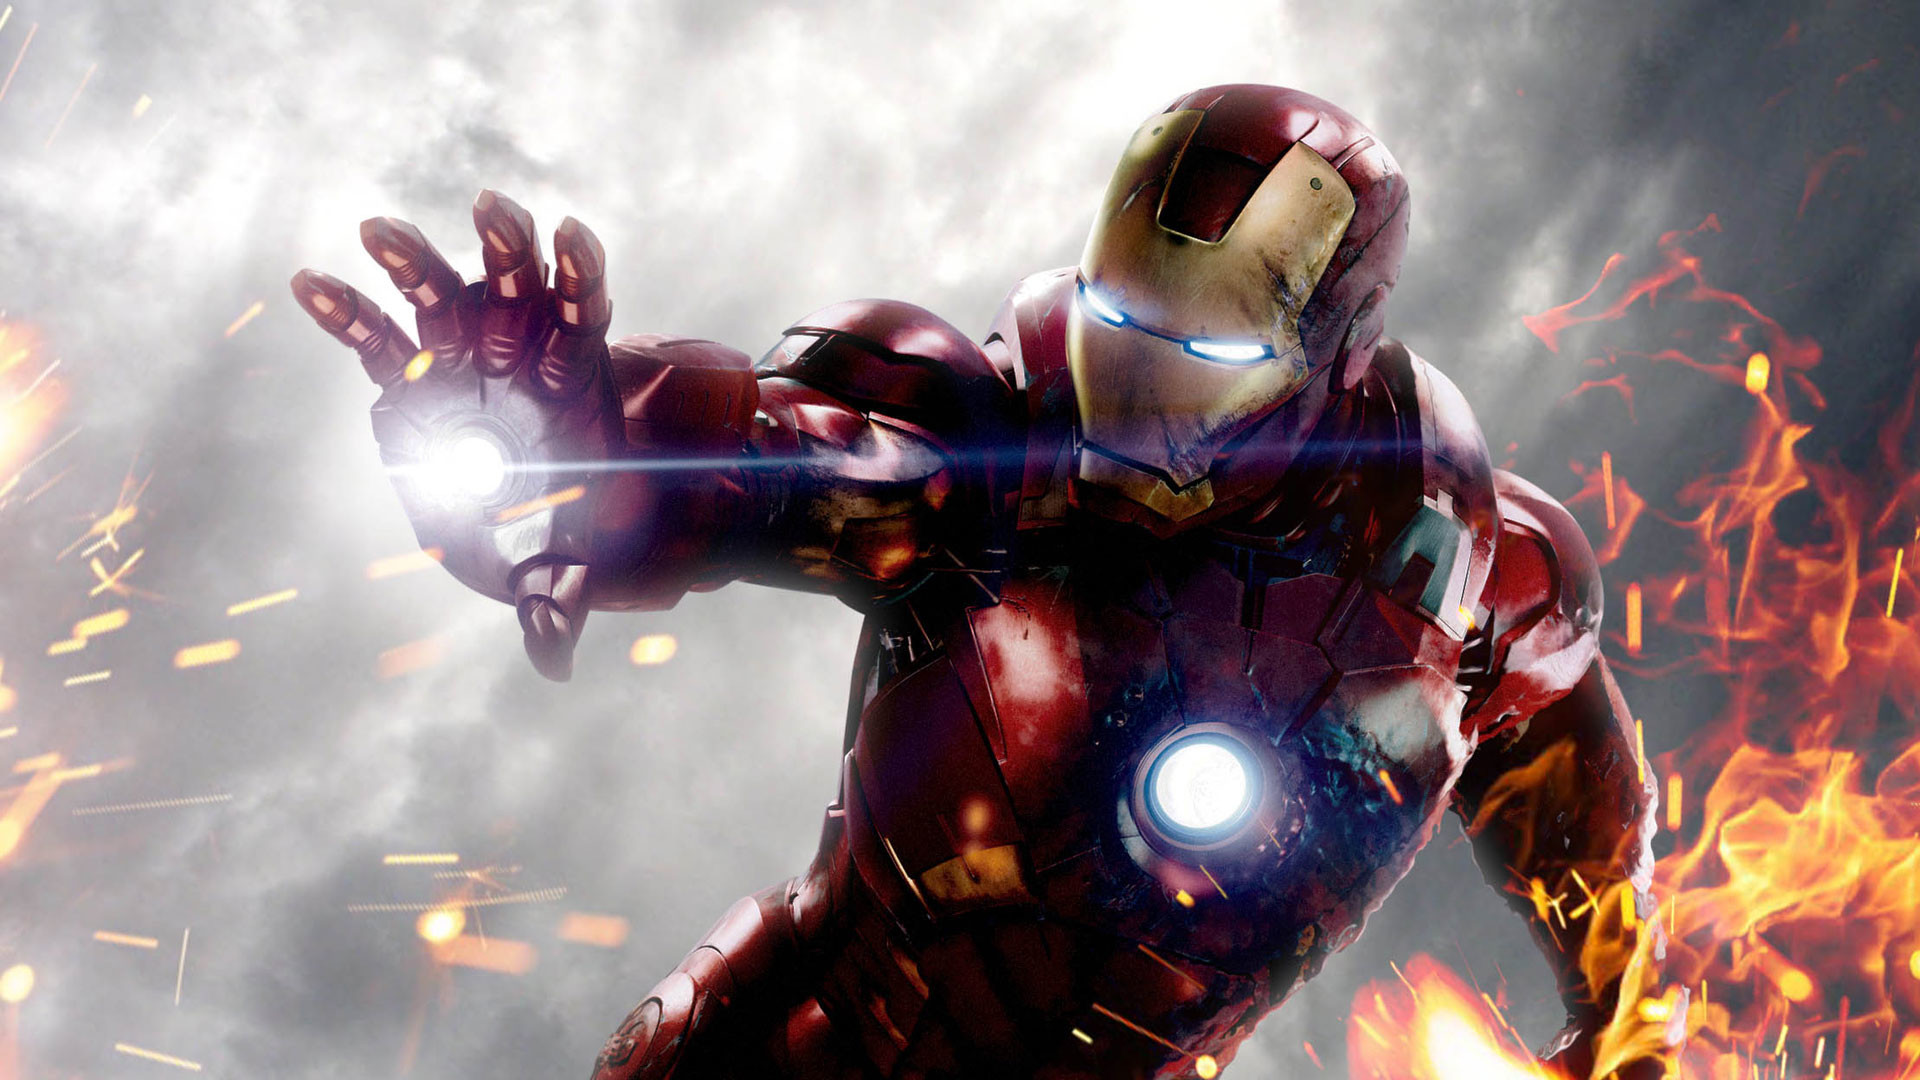 1920x1080 0 Arc Reactor Wallpaper HD Collection of Iron Man Wallpaper Hd on Spyder Wallpapers